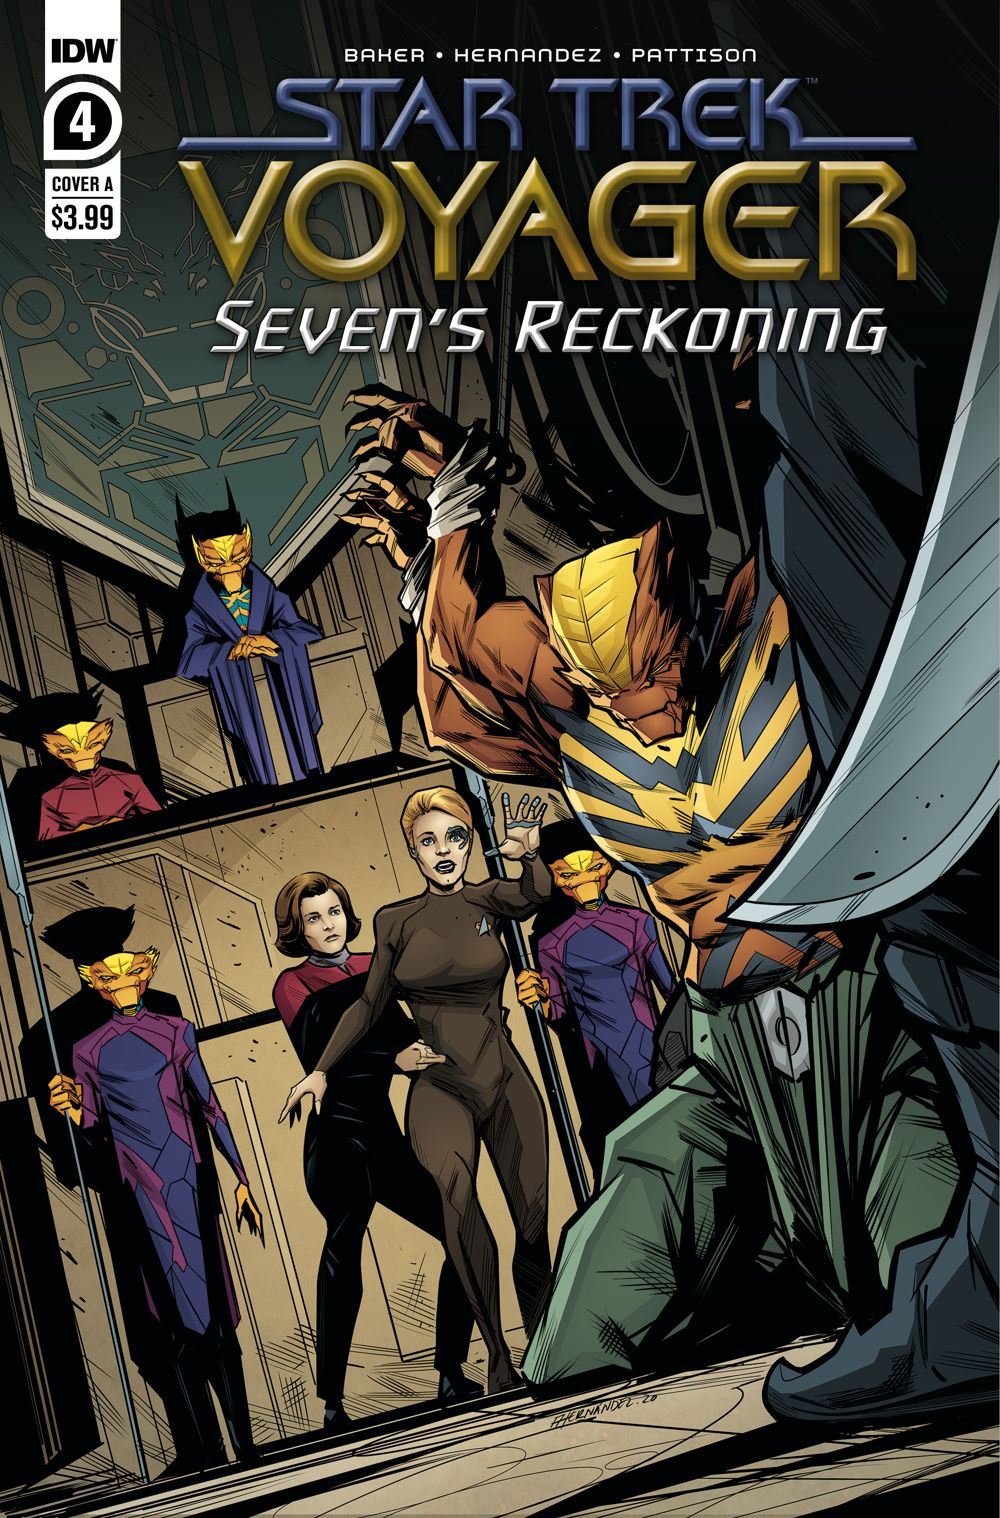 ST_Voyager_SR04-coverA ComicList Previews: STAR TREK VOYAGER SEVEN'S RECKONING #4 (OF 4)